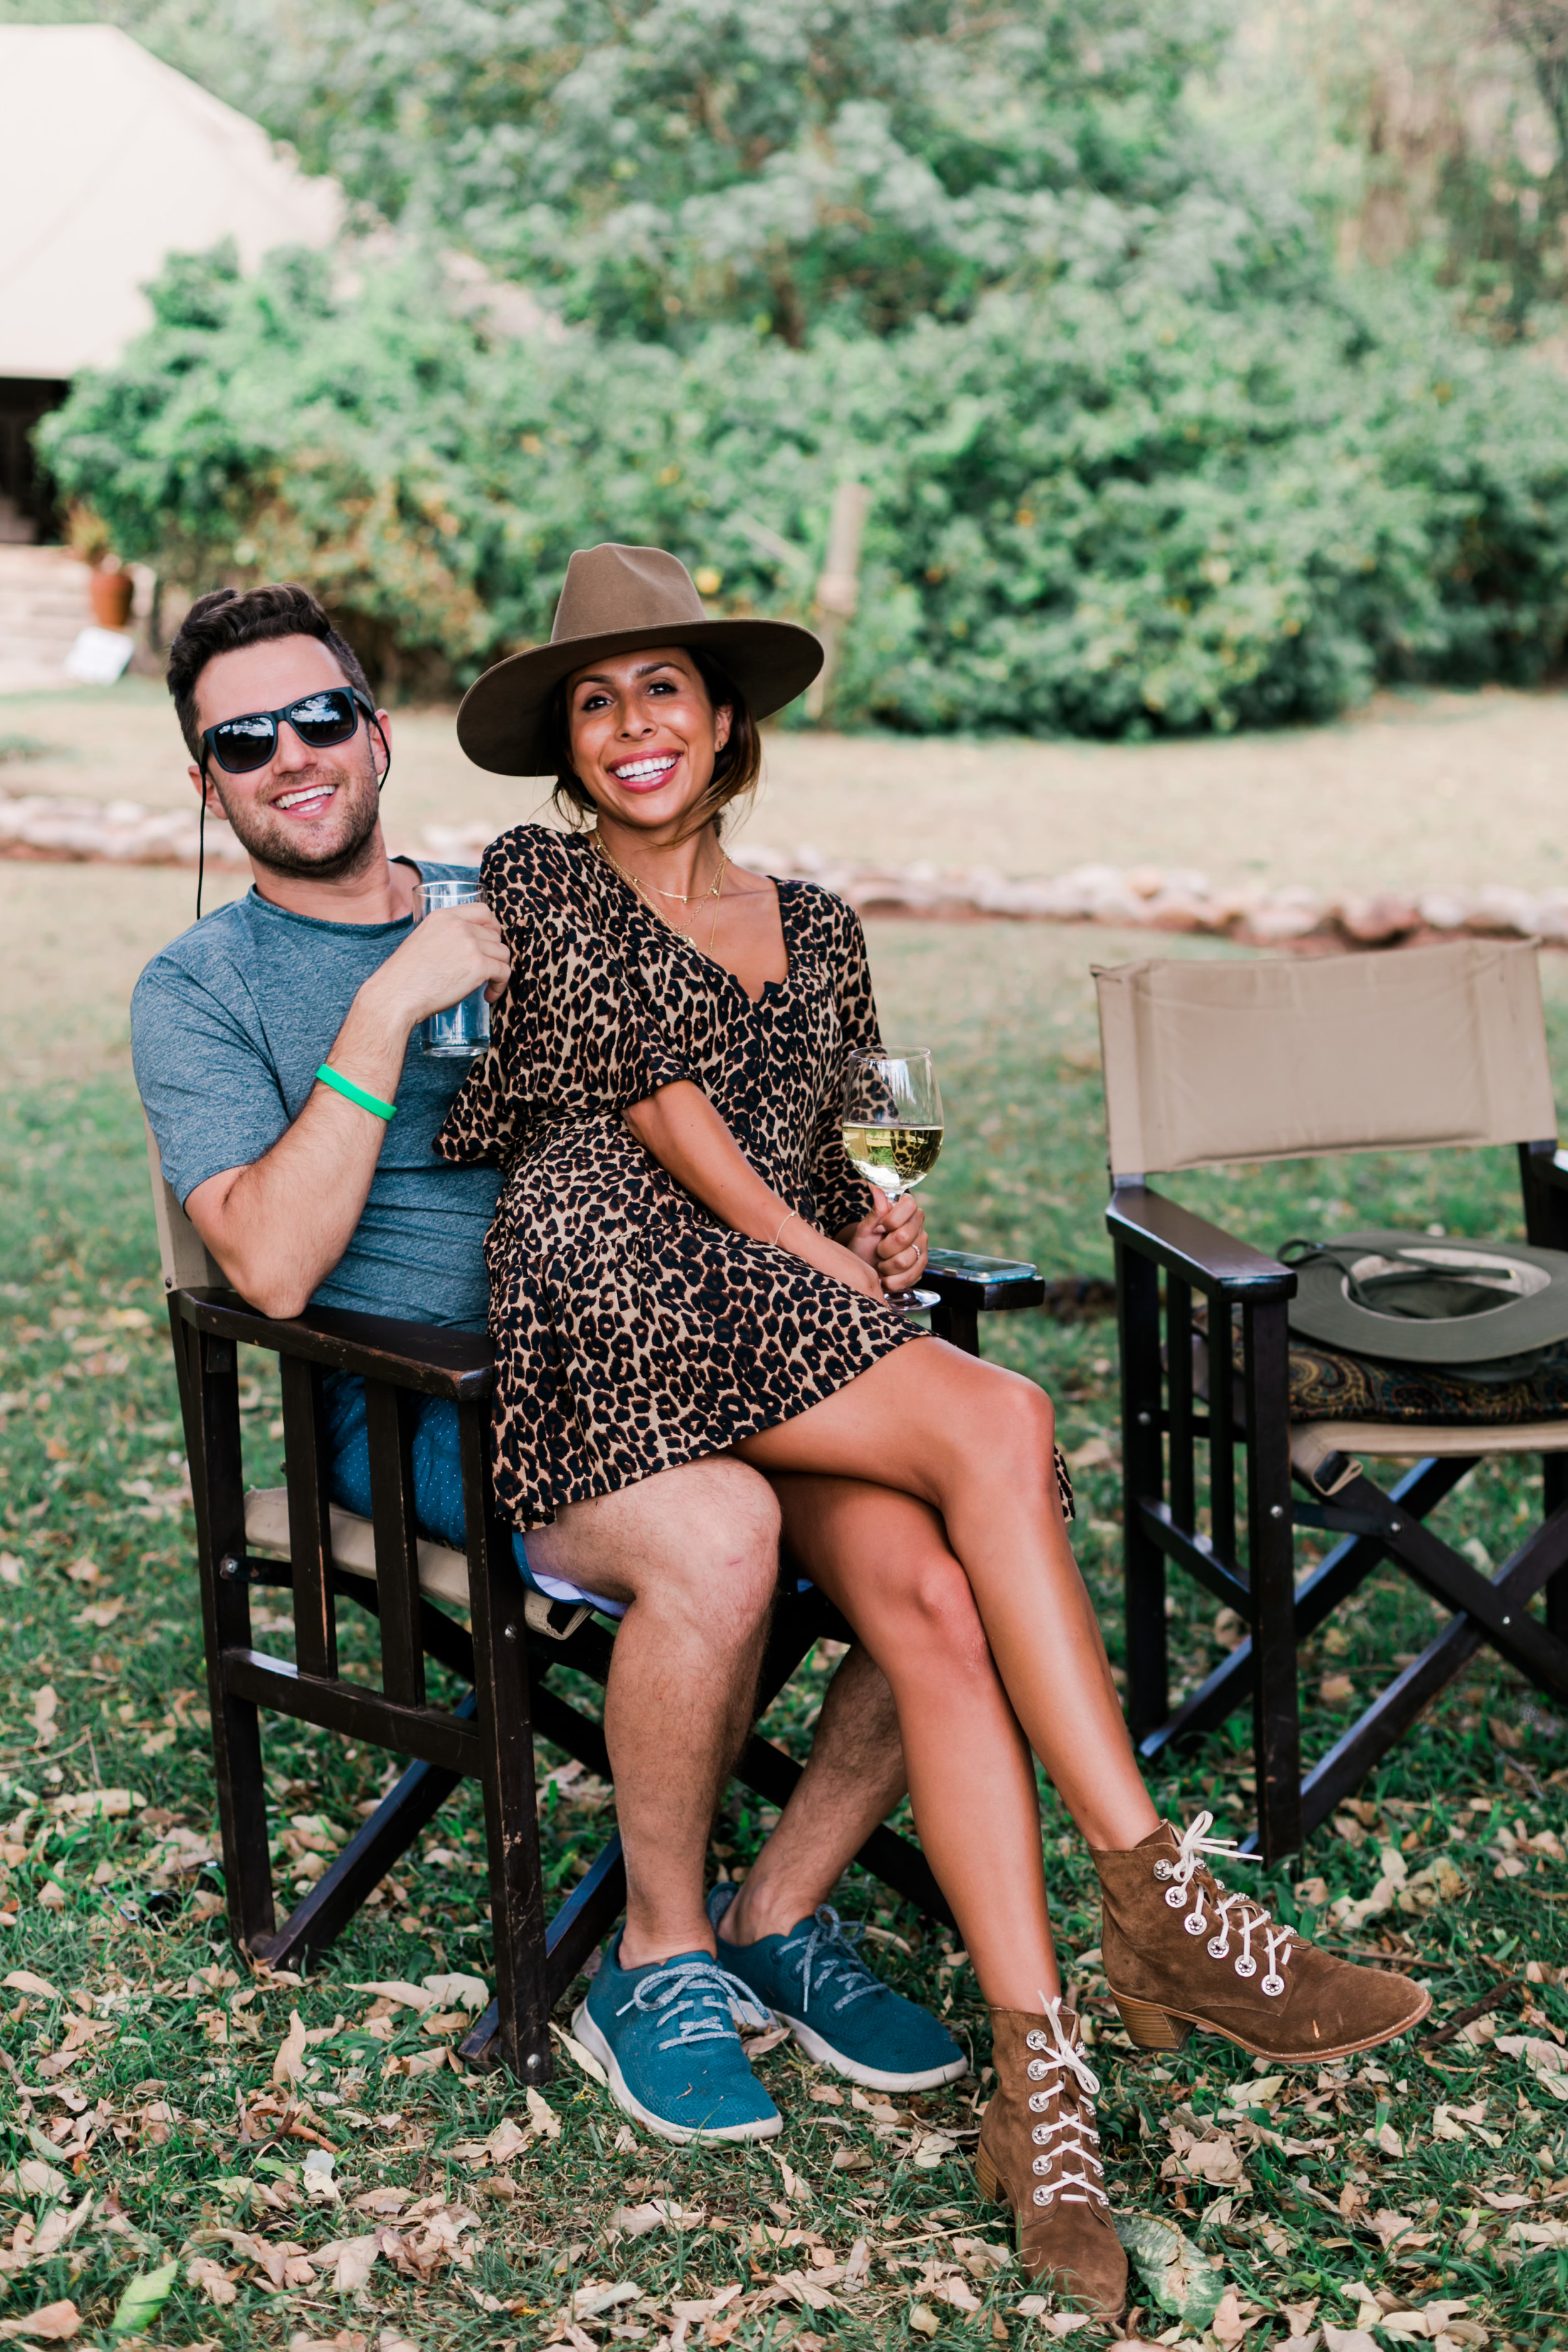 Ashley + Andy - Everyday Pursuits Safari Trip with Kin Travel Ph. Valorie Darling